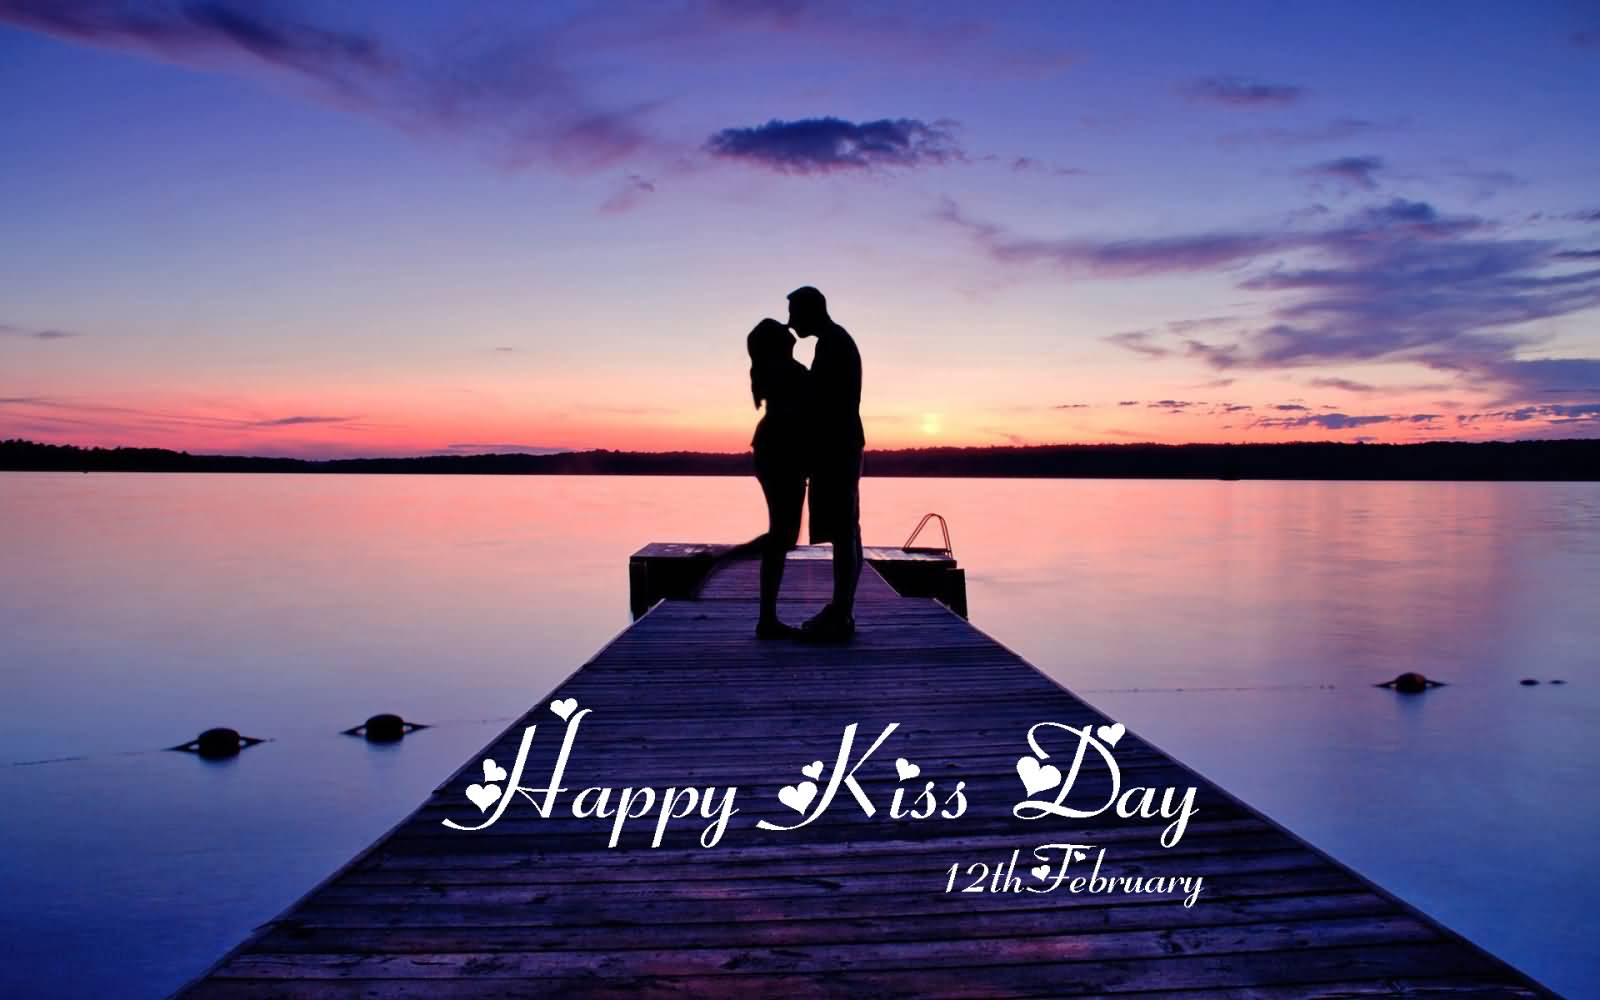 55 Happy Kiss Day Greeting Pictures And Image